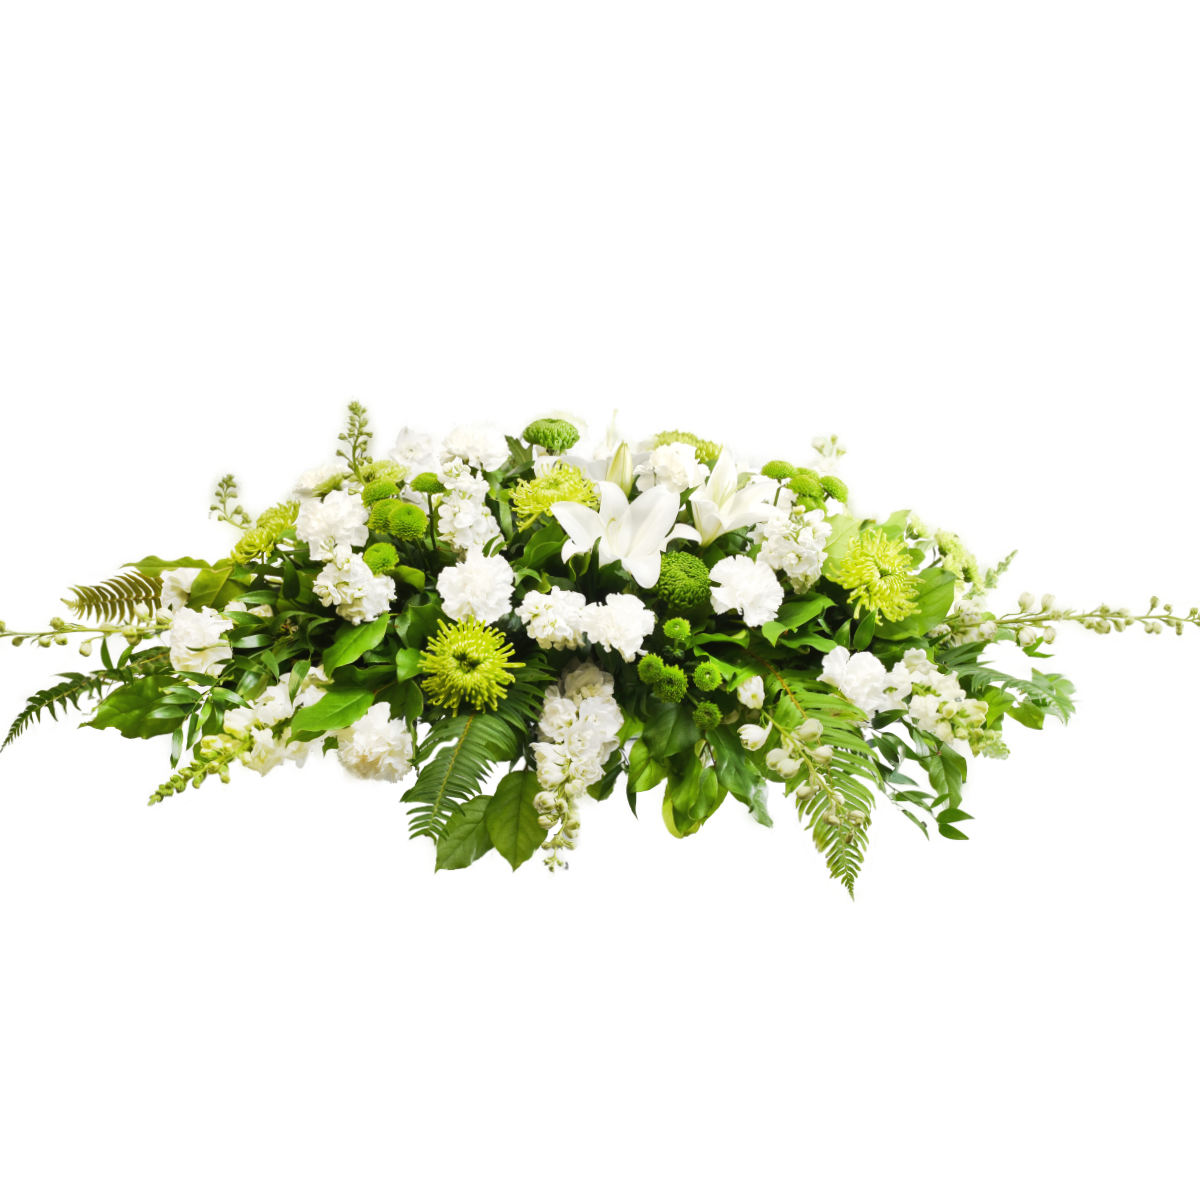 Vancouver Funeral Flower Casket Spray Delivery | Funeral Florist Adele Rae